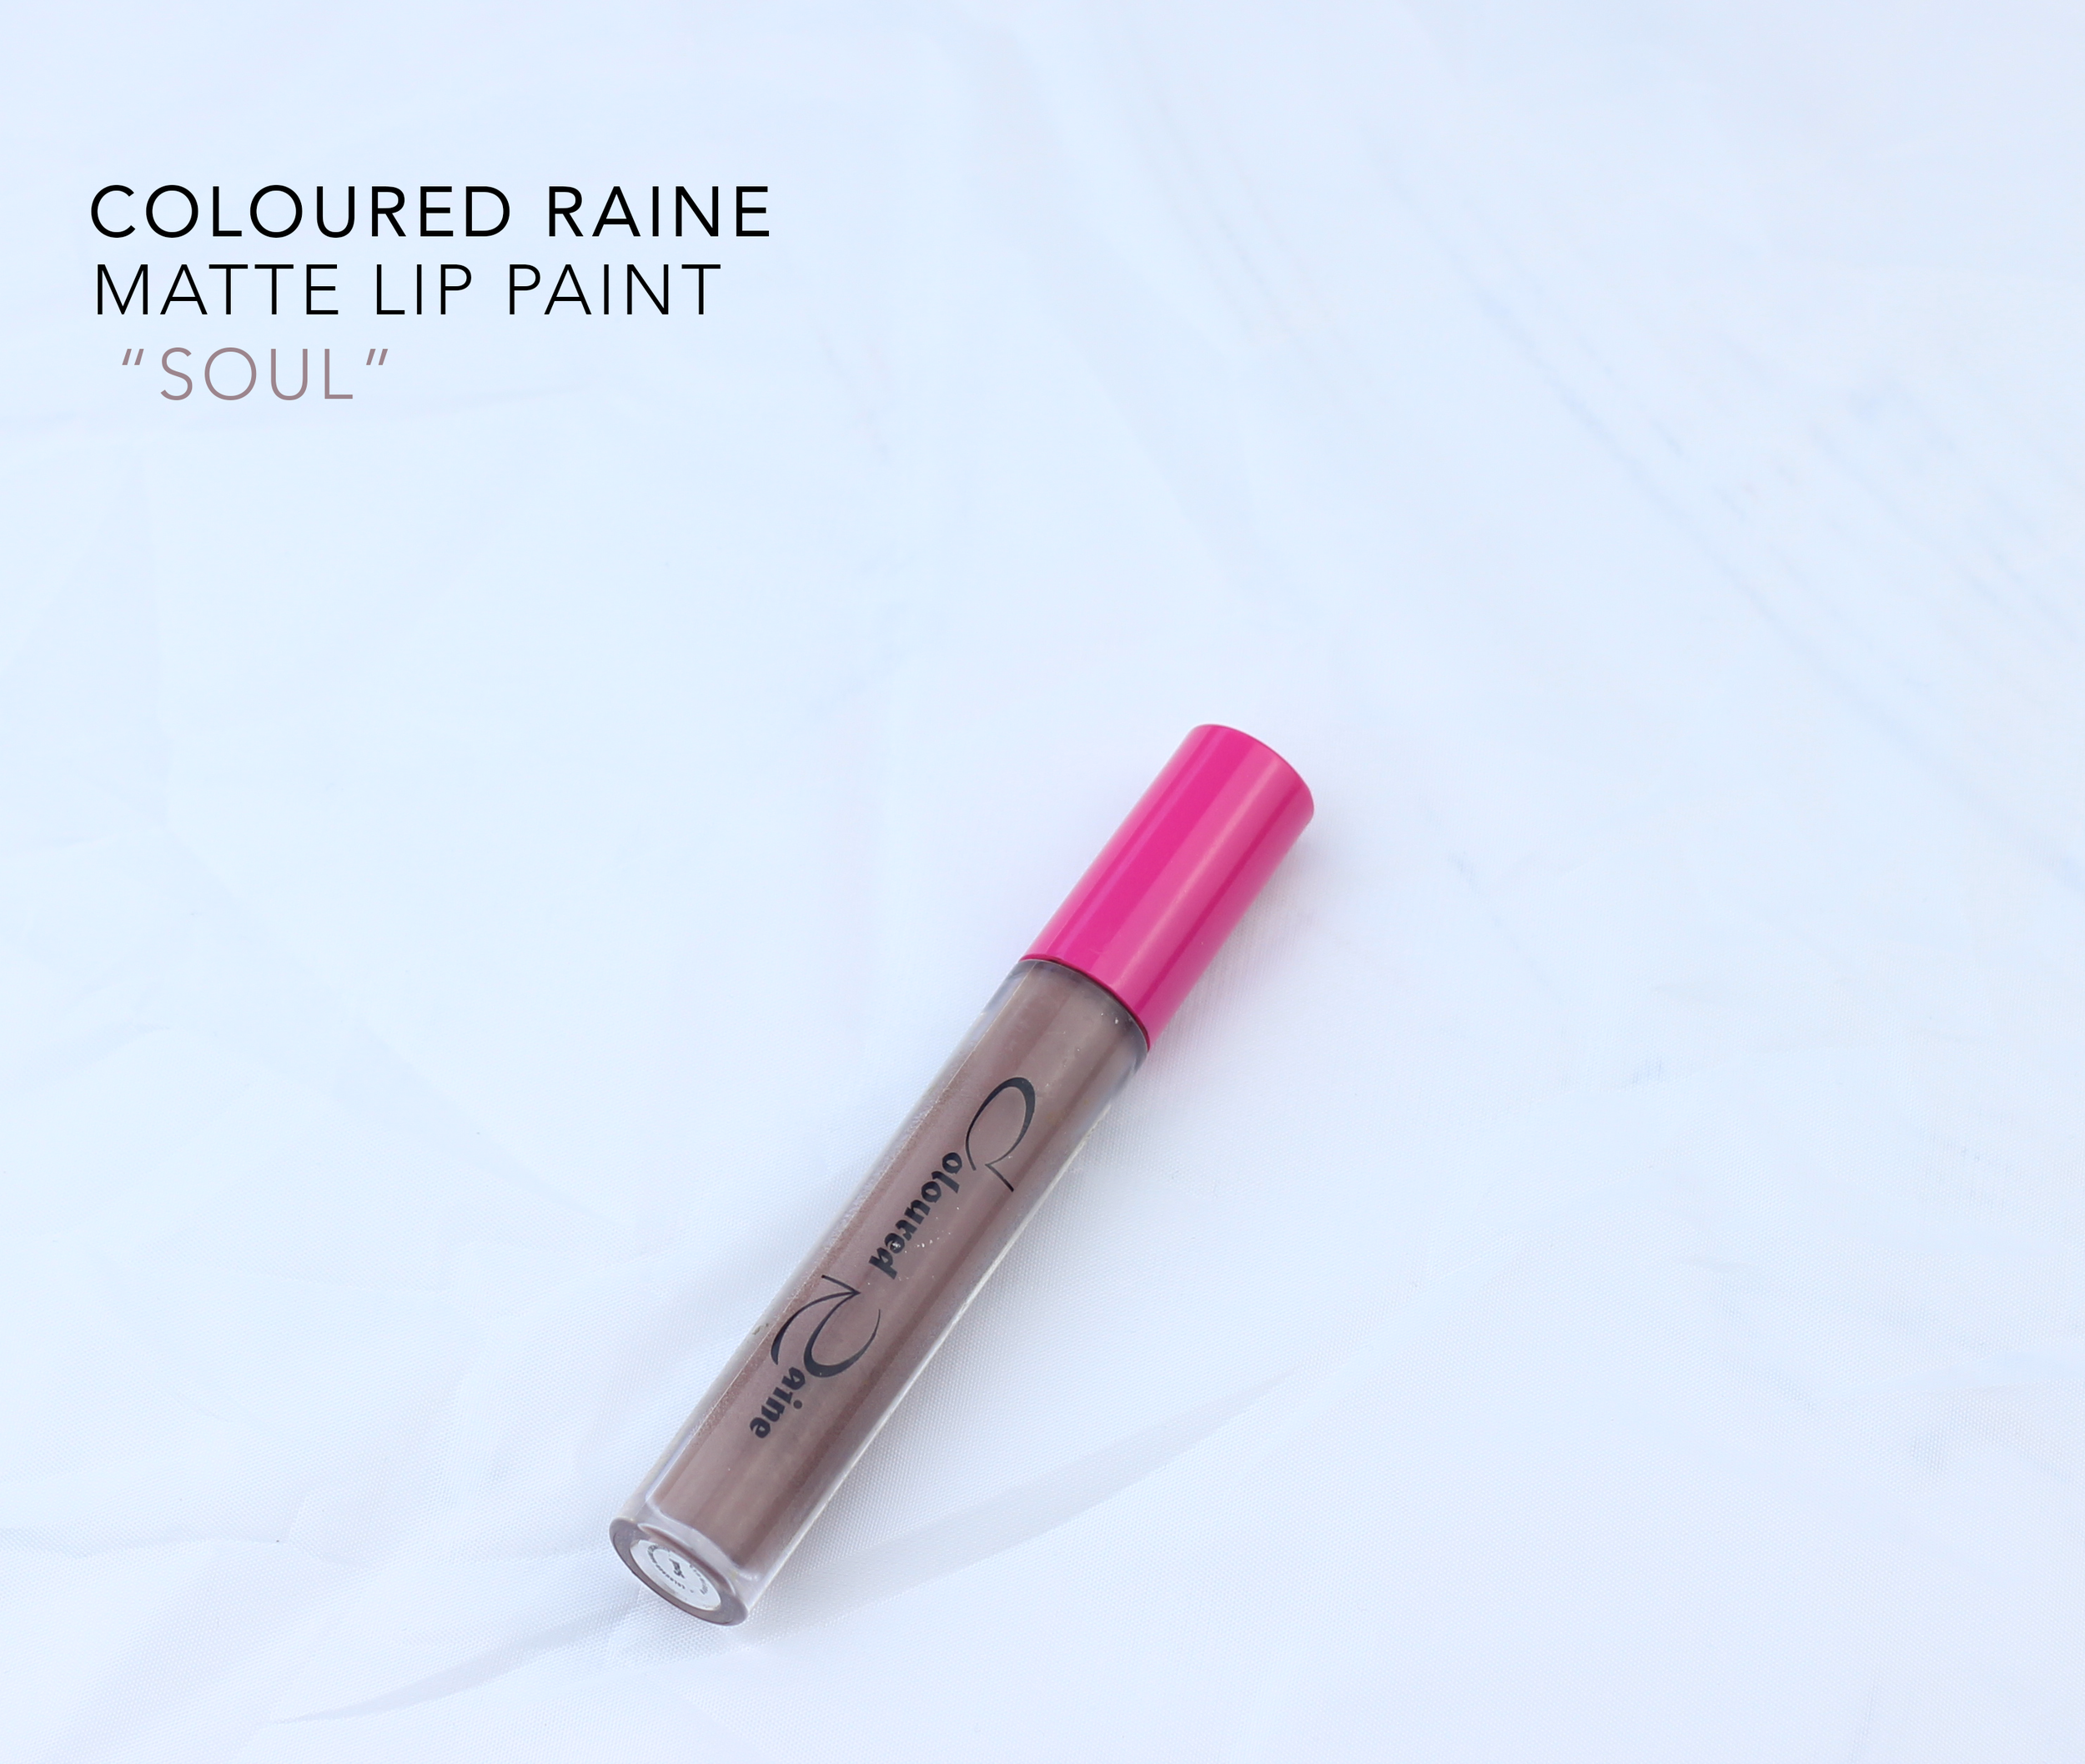 coloured raine soul matte lip paint